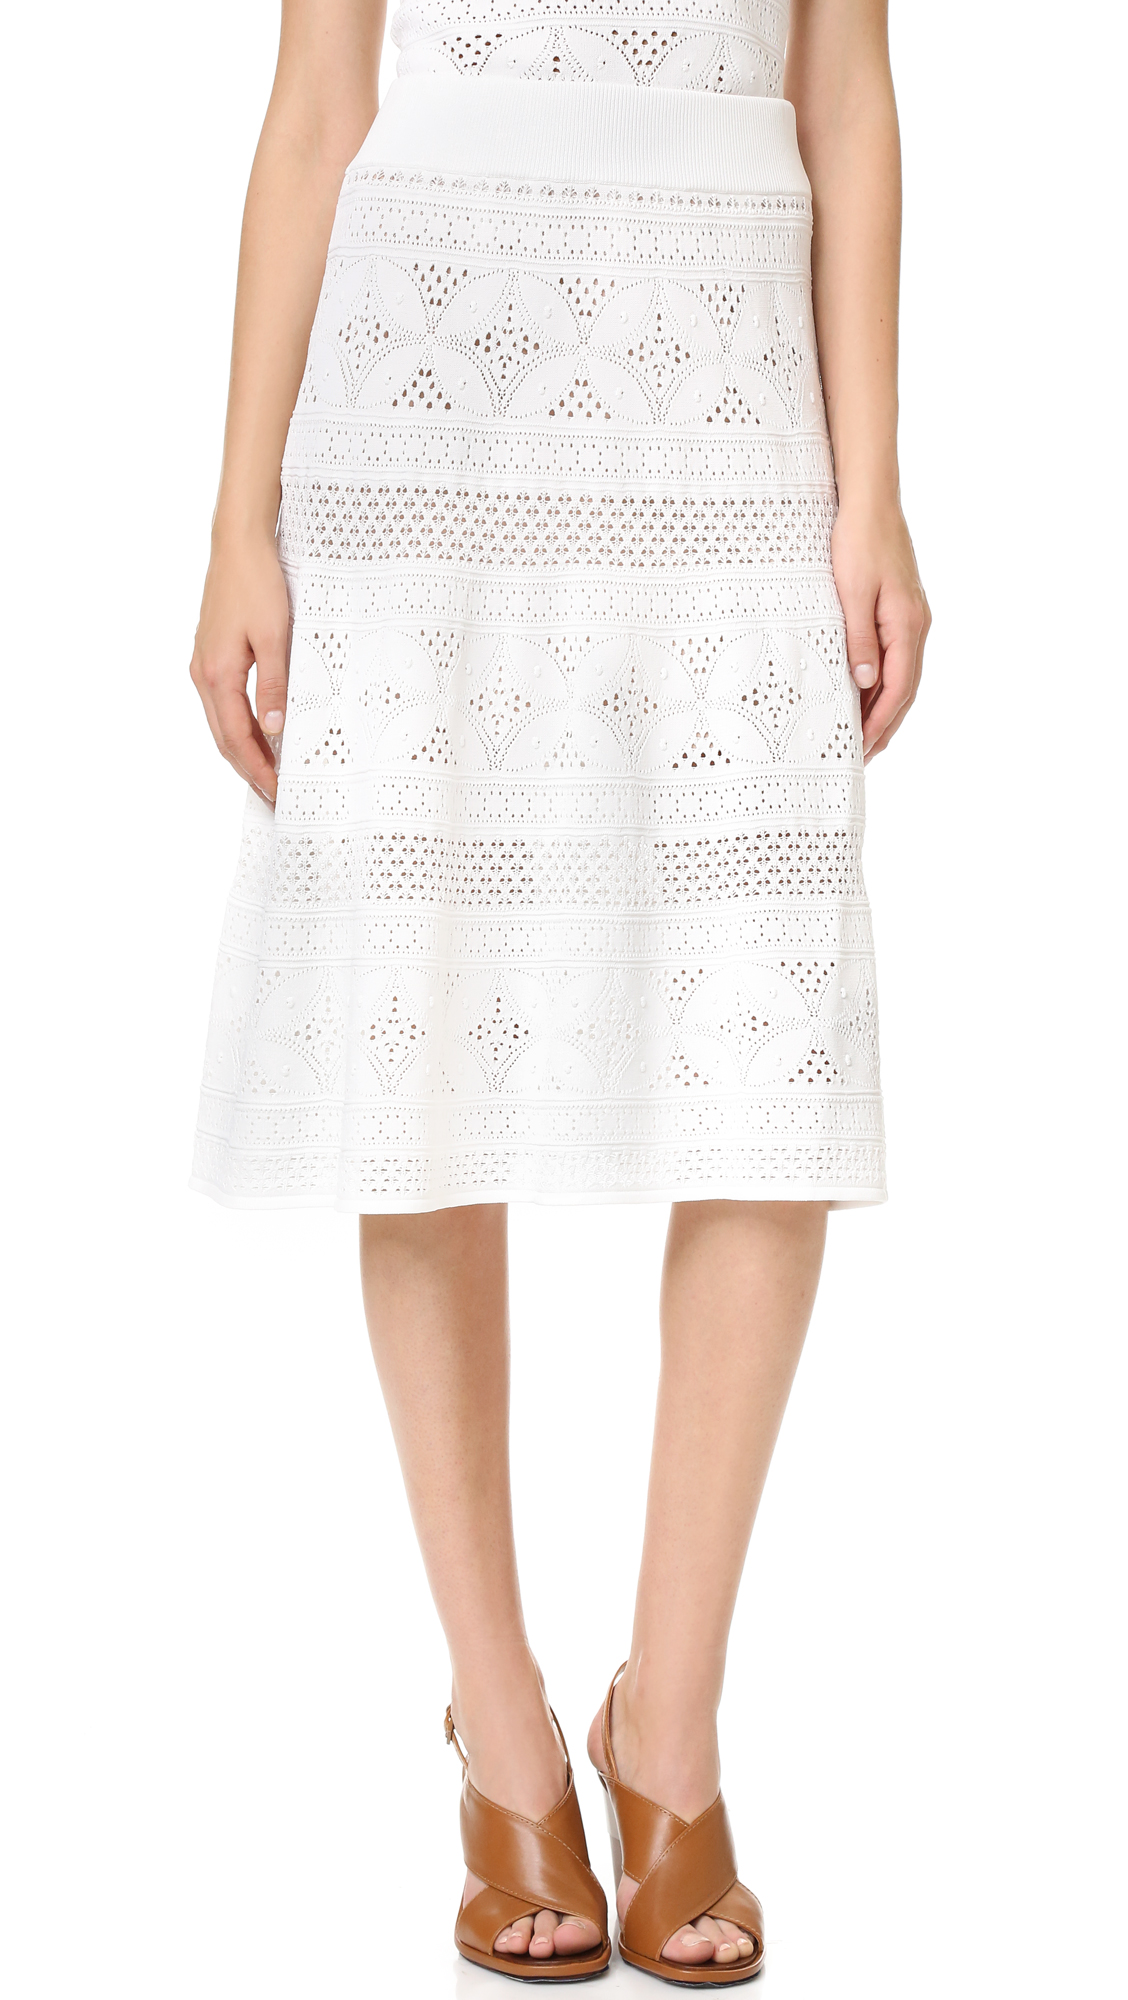 A.L.C. Tunney Skirt - White at Shopbop